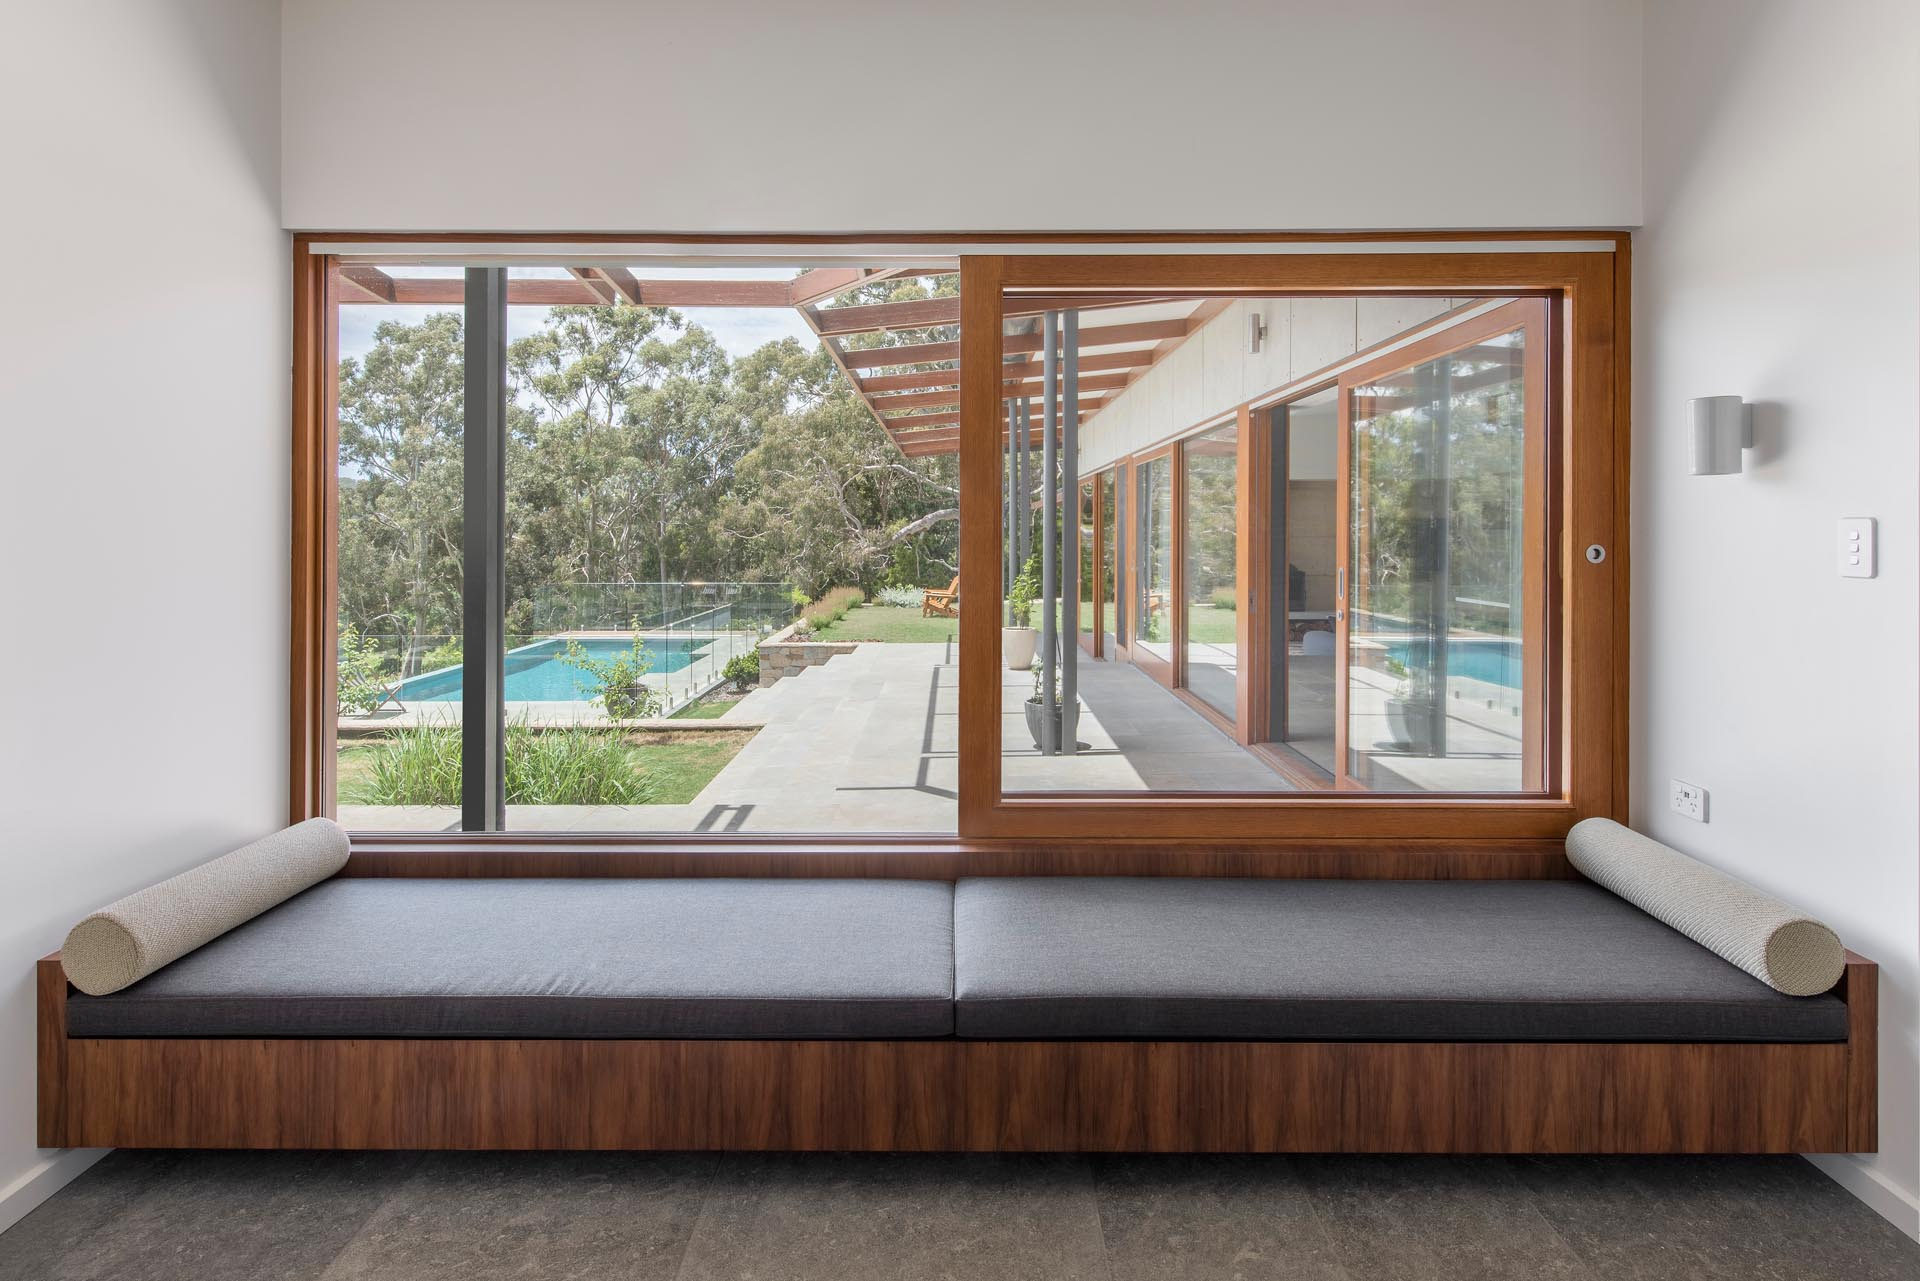 A quieter space in thsi home that also opens to the outdoors, is a full width day bed by the window, that takes advantage of the terrace and pool views.